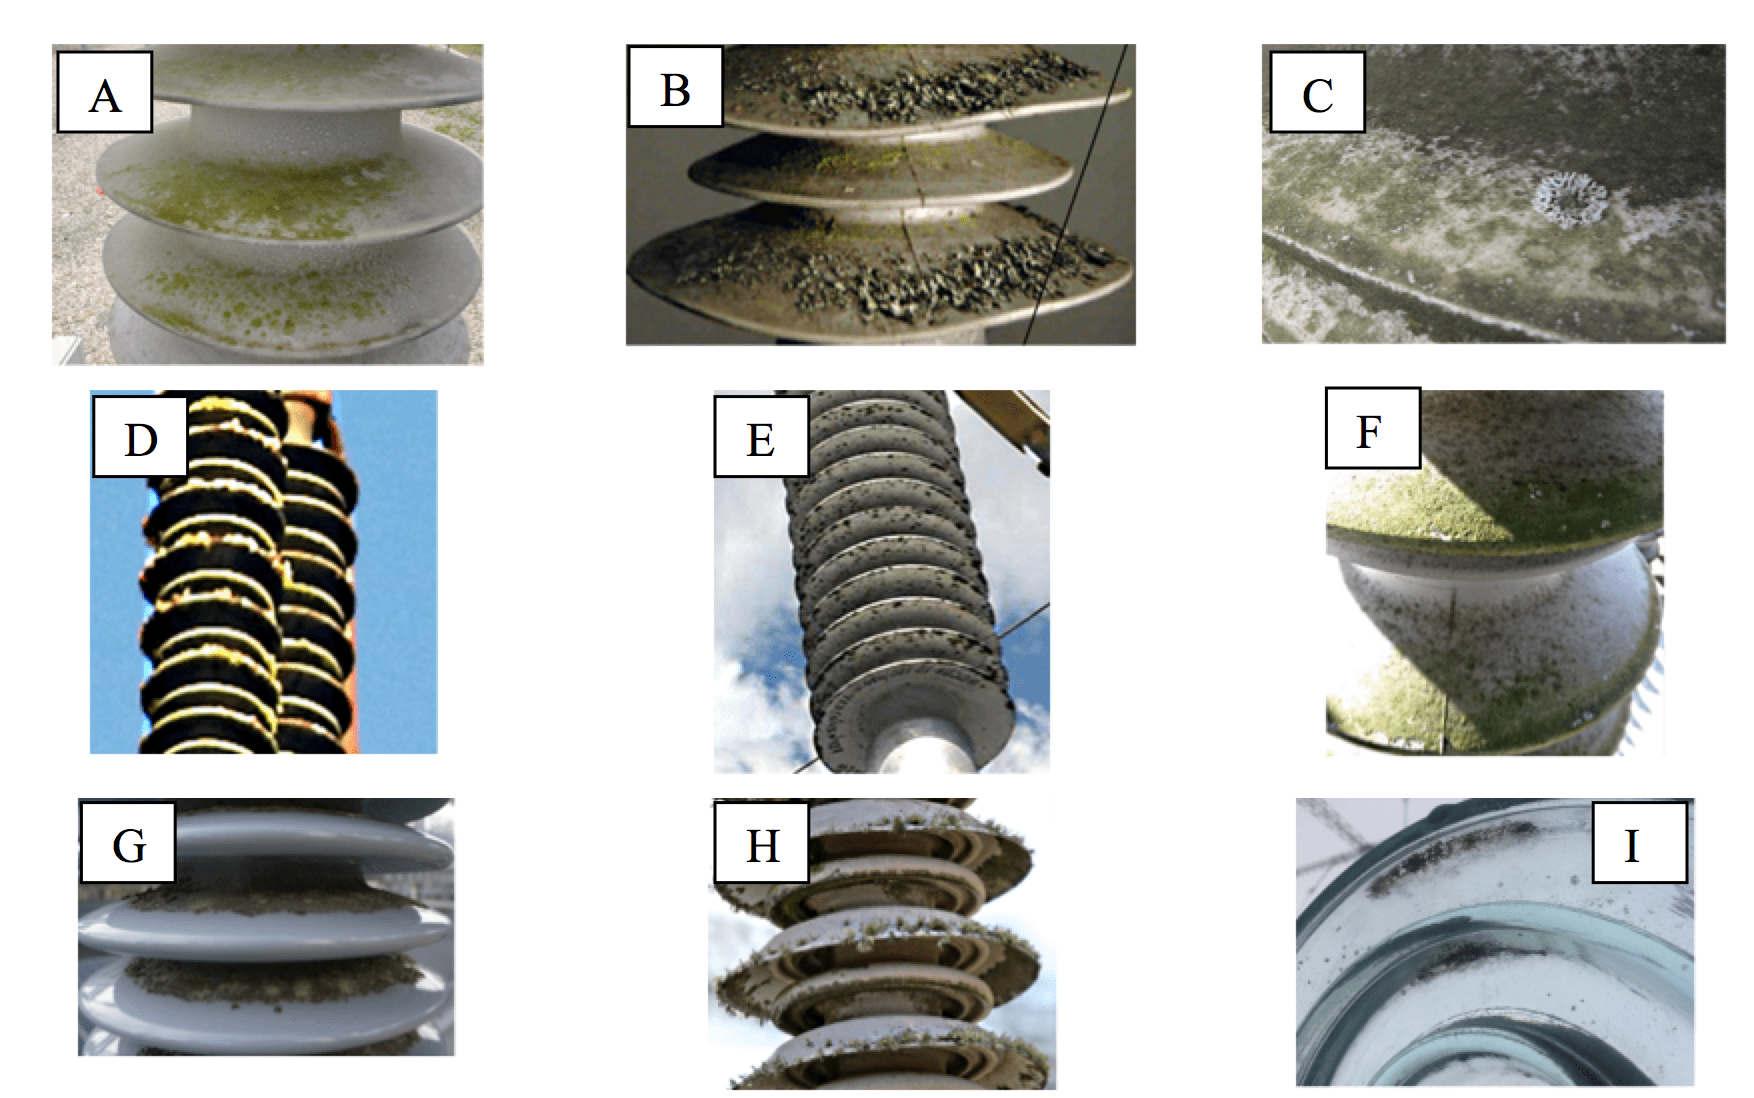 composite insulator Biological Growths on Composite Insulators HV insulators